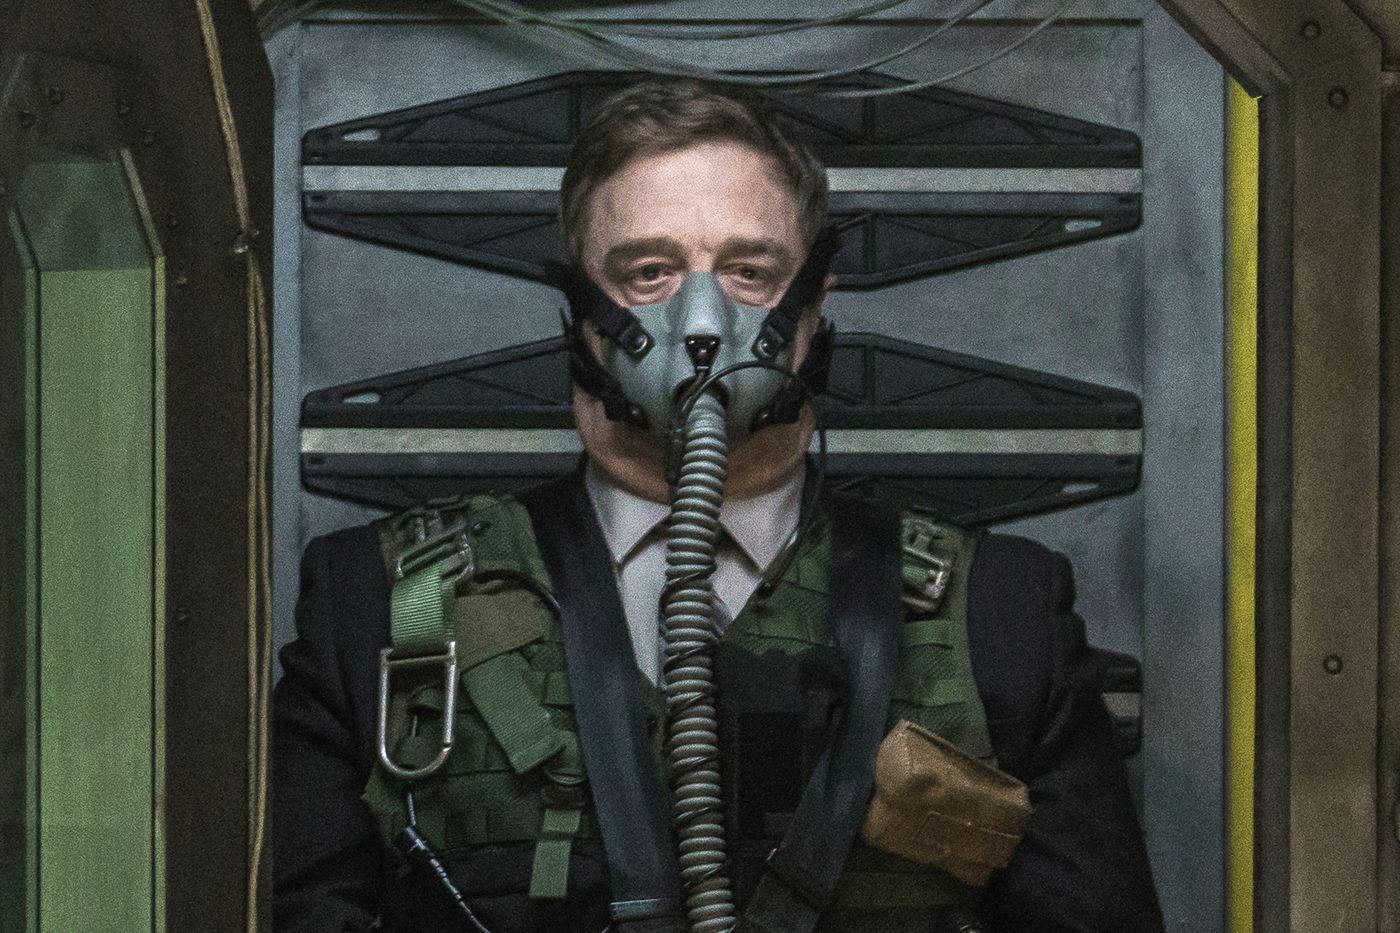 Captive State S Explosive Ending Explained By Director Rupert Wyatt Polygon